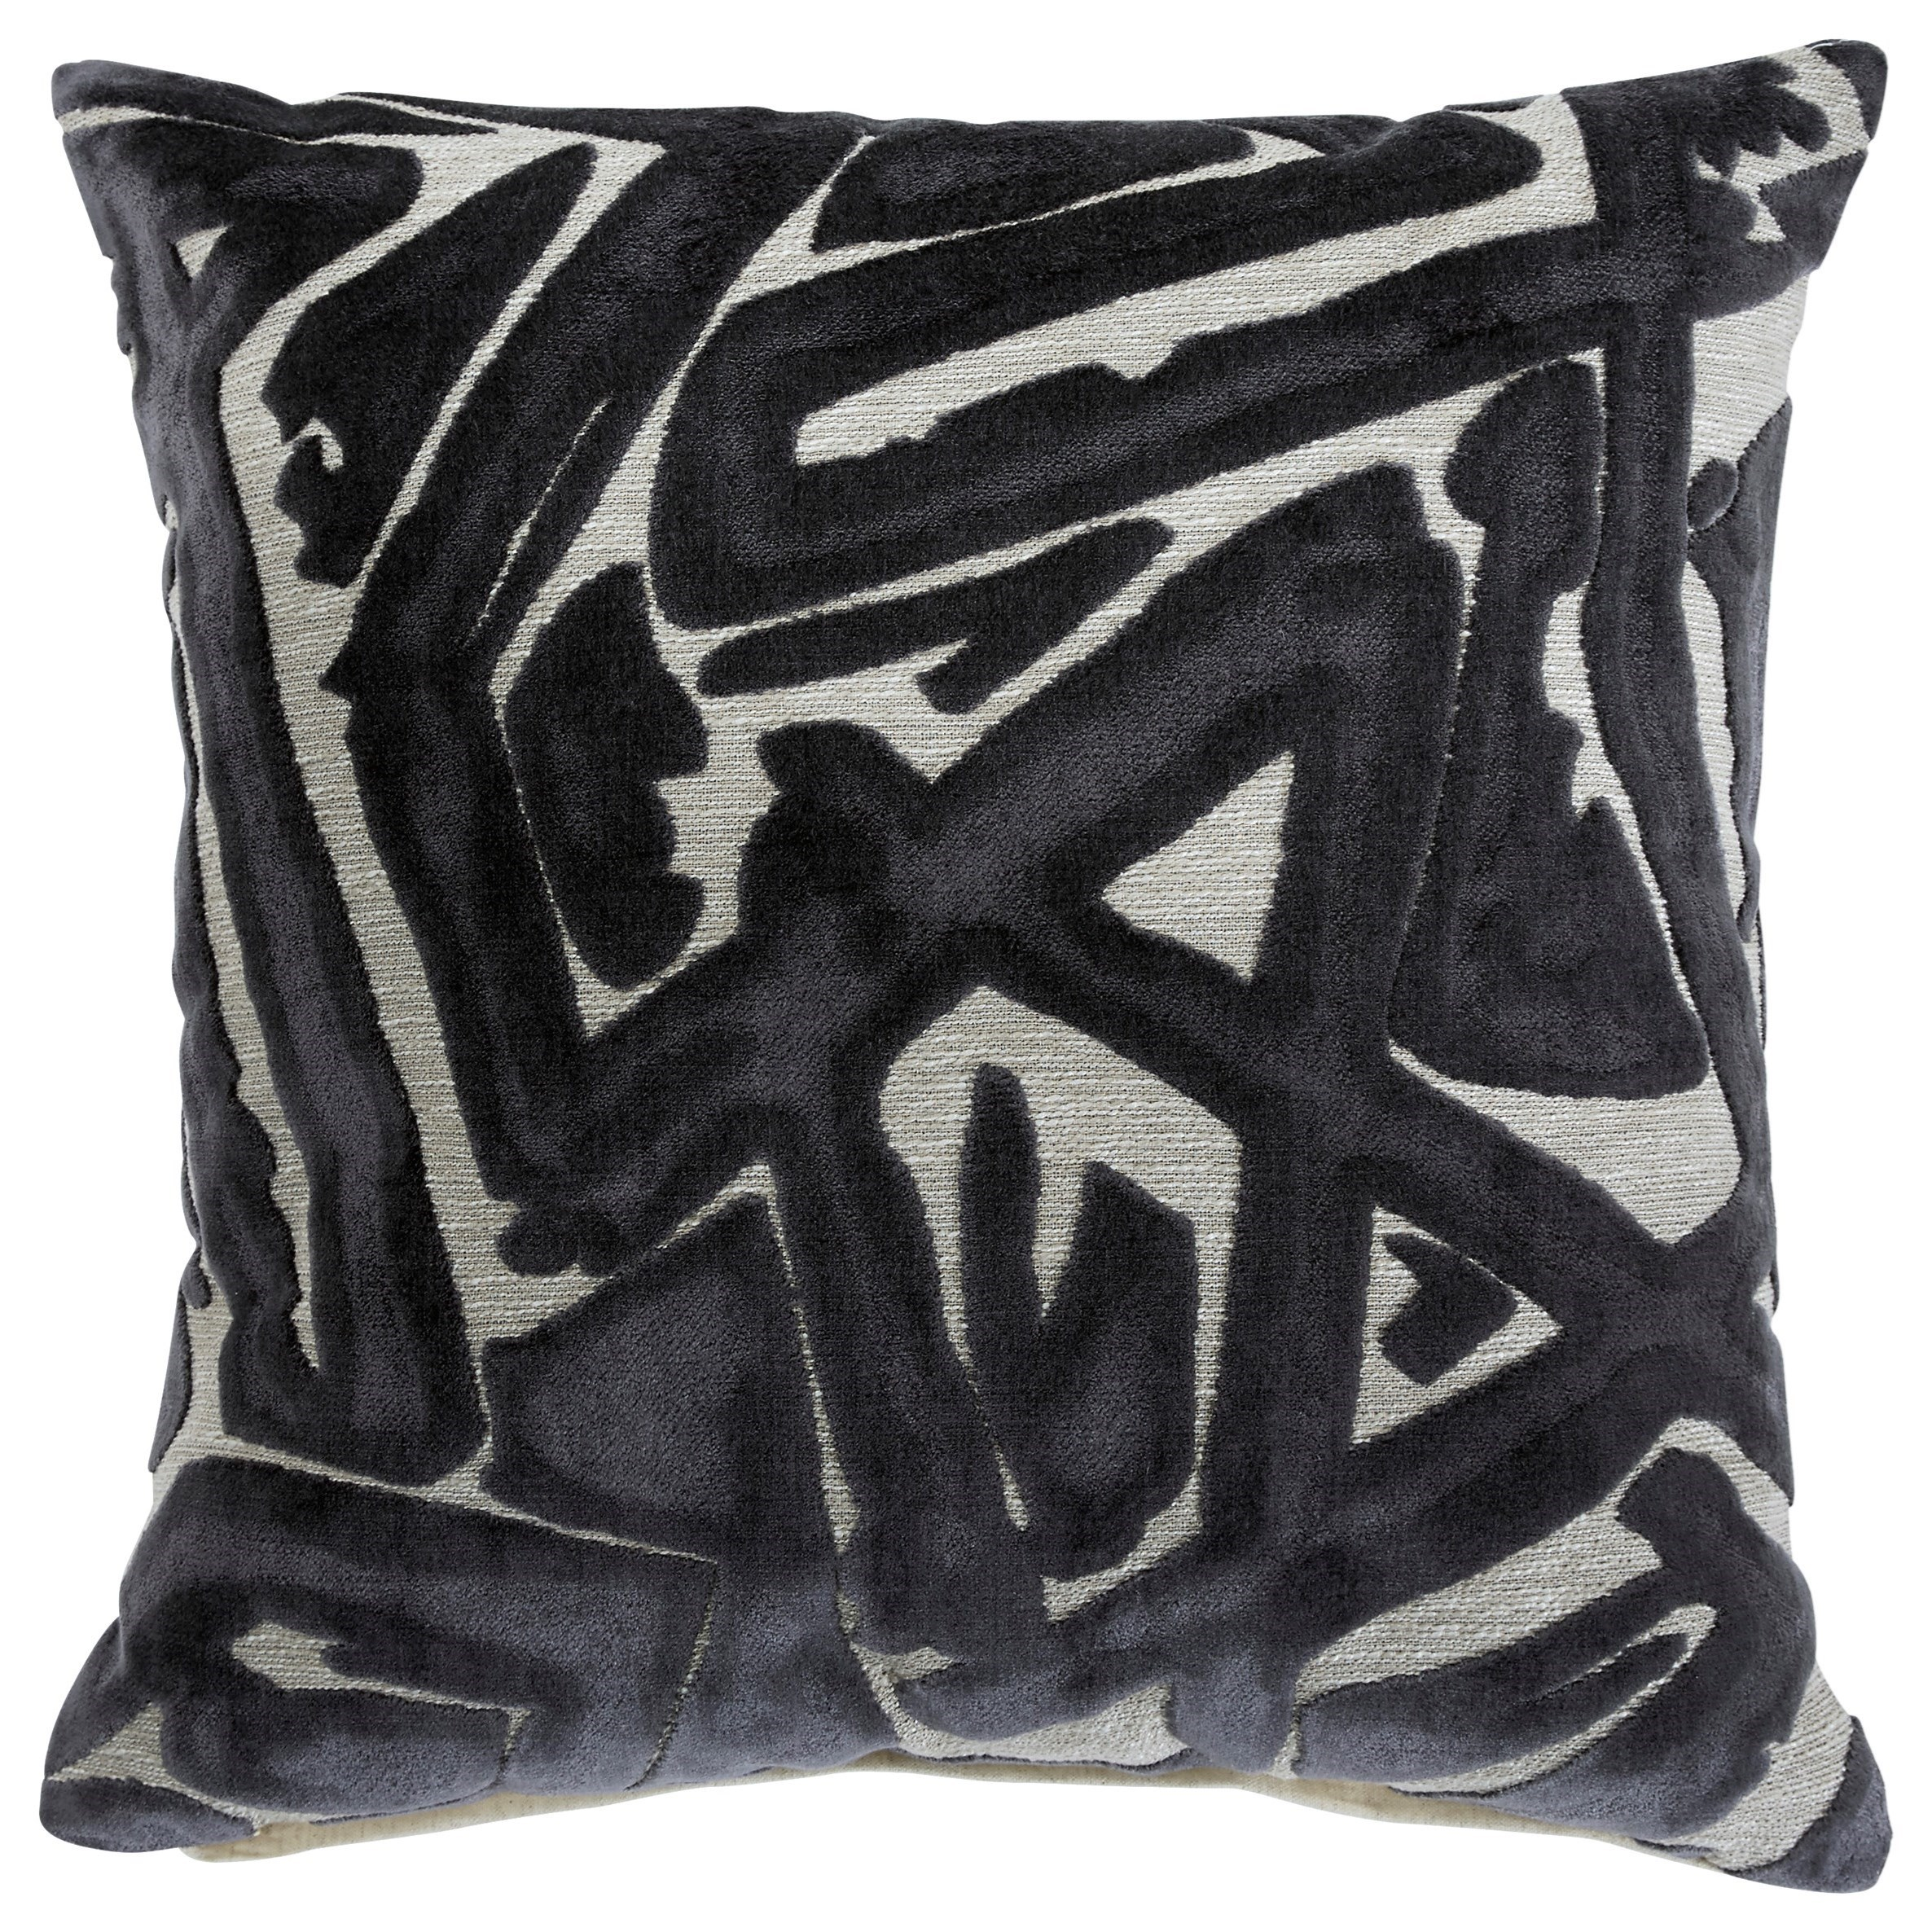 Pillows Kaslow Gray Pillow by Signature Design by Ashley at Dream Home Interiors